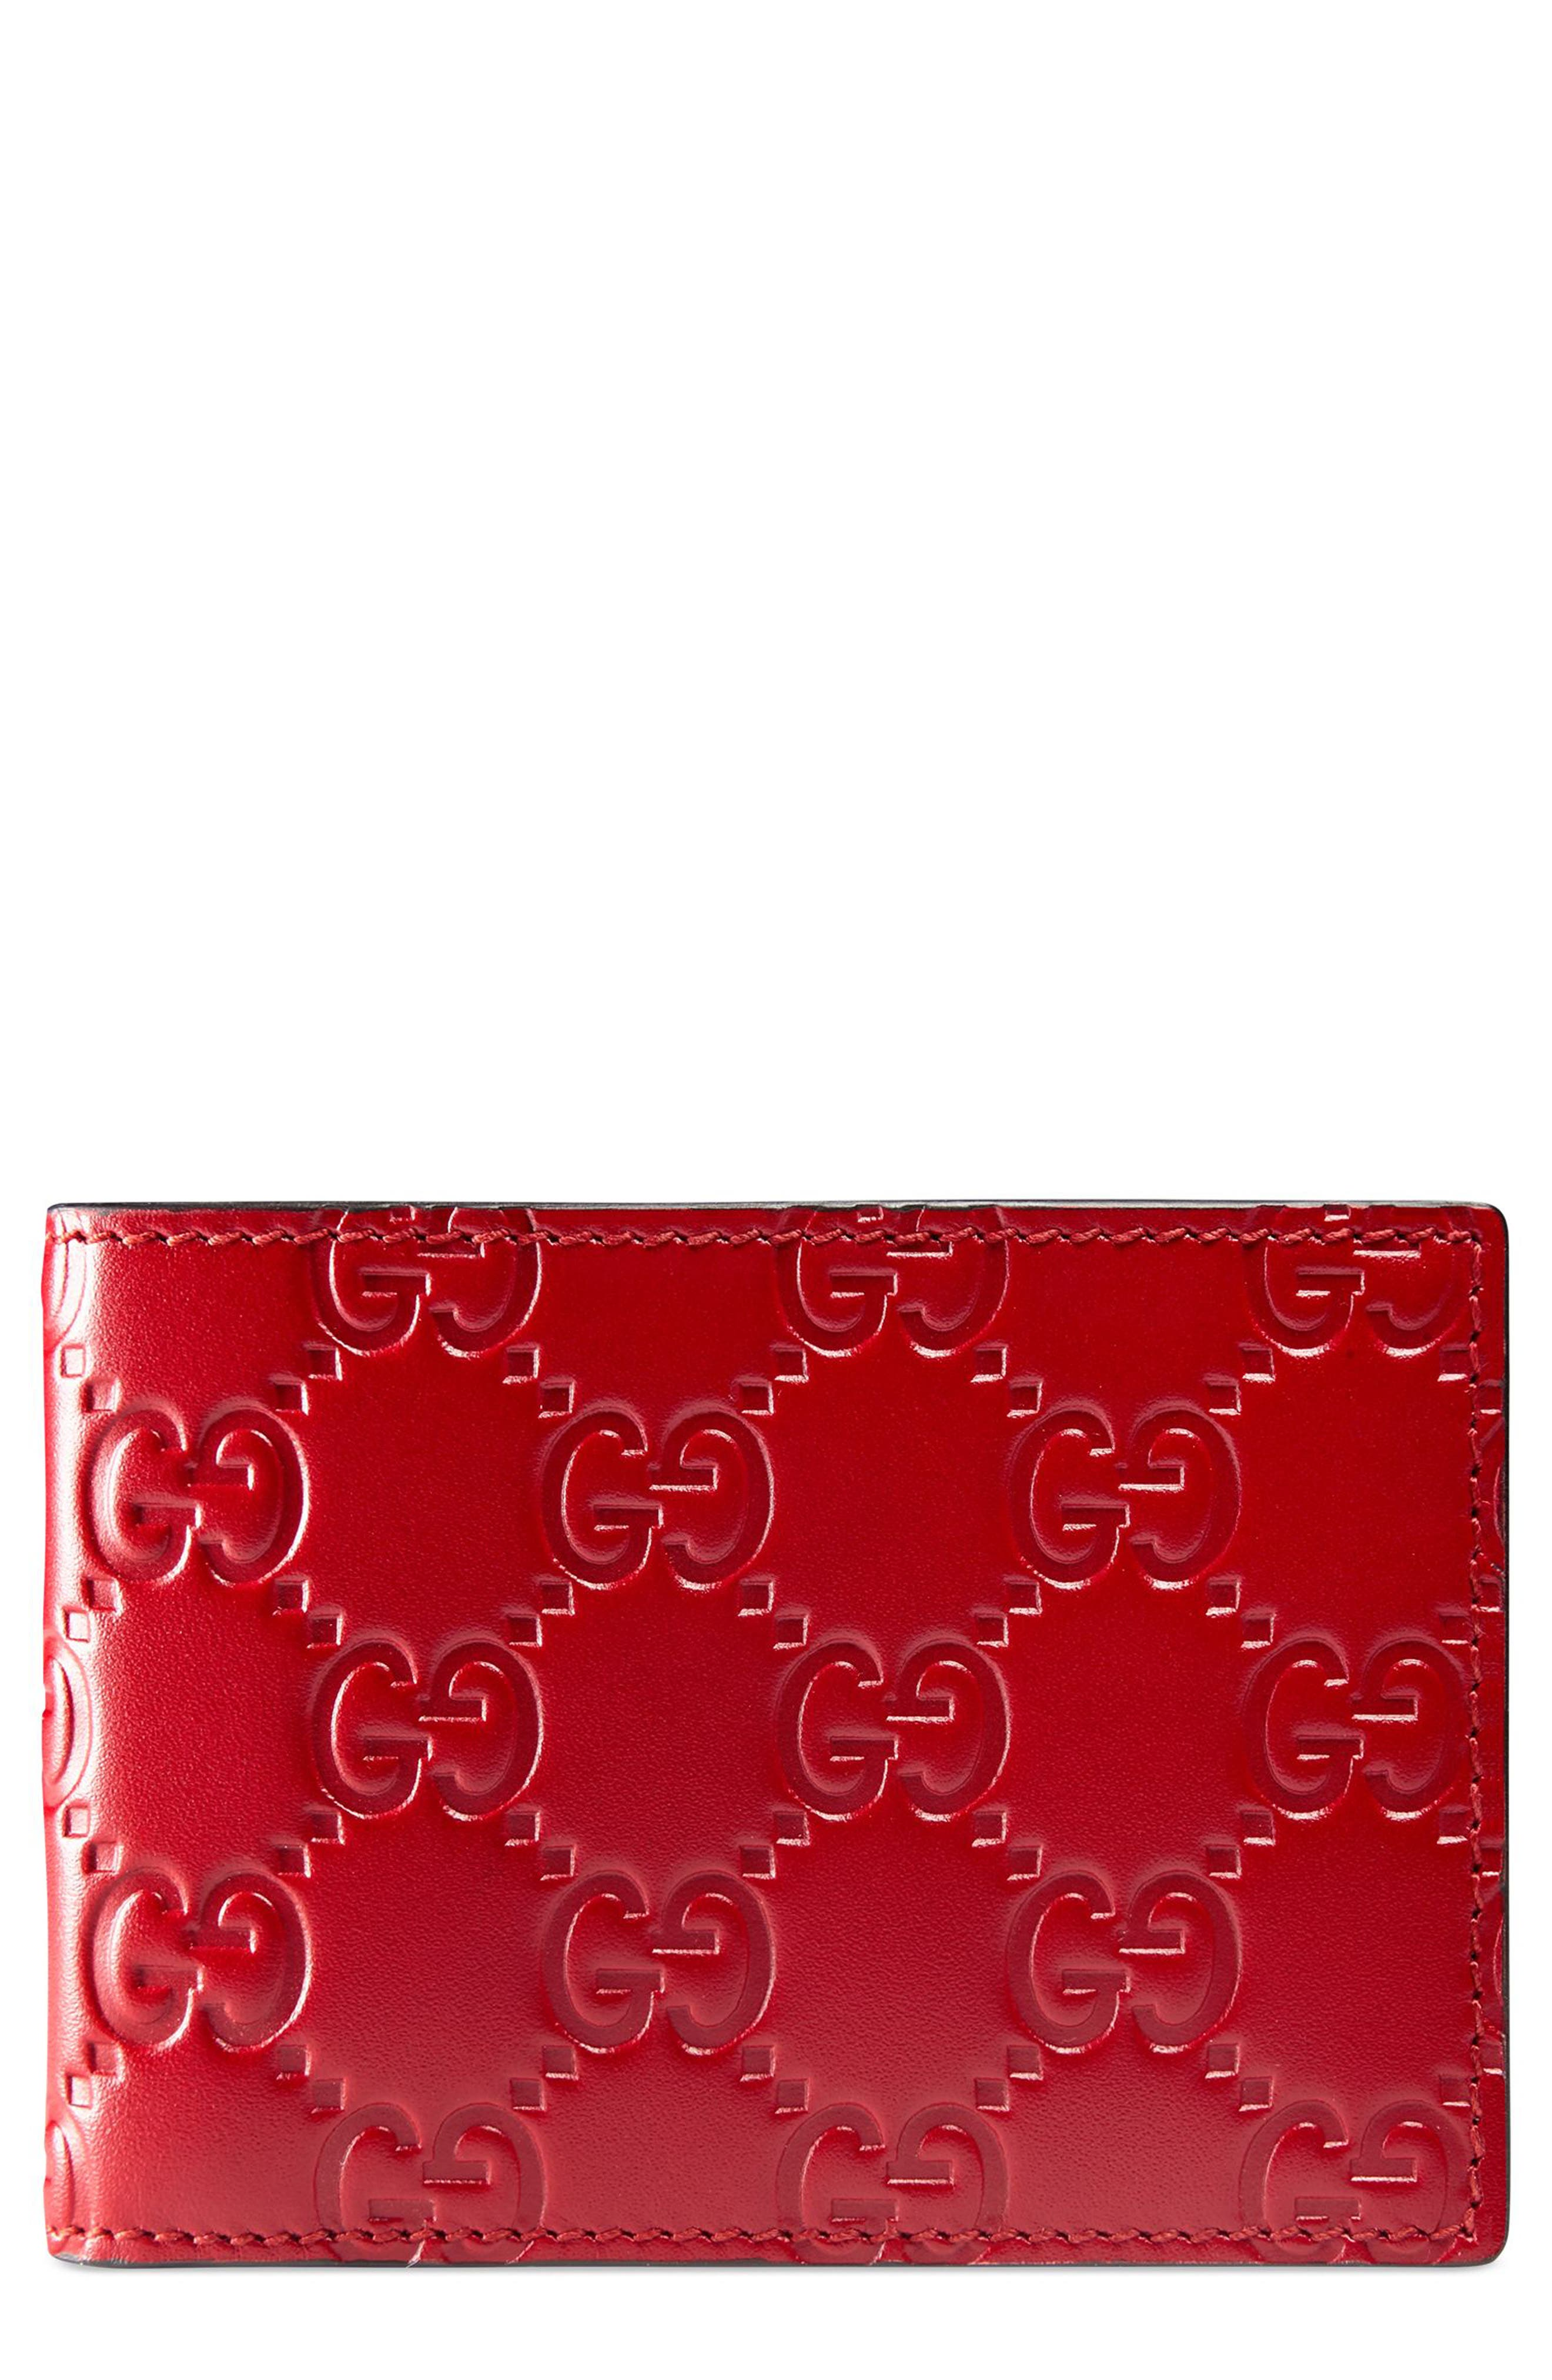 Avel Wallet,                         Main,                         color, Red